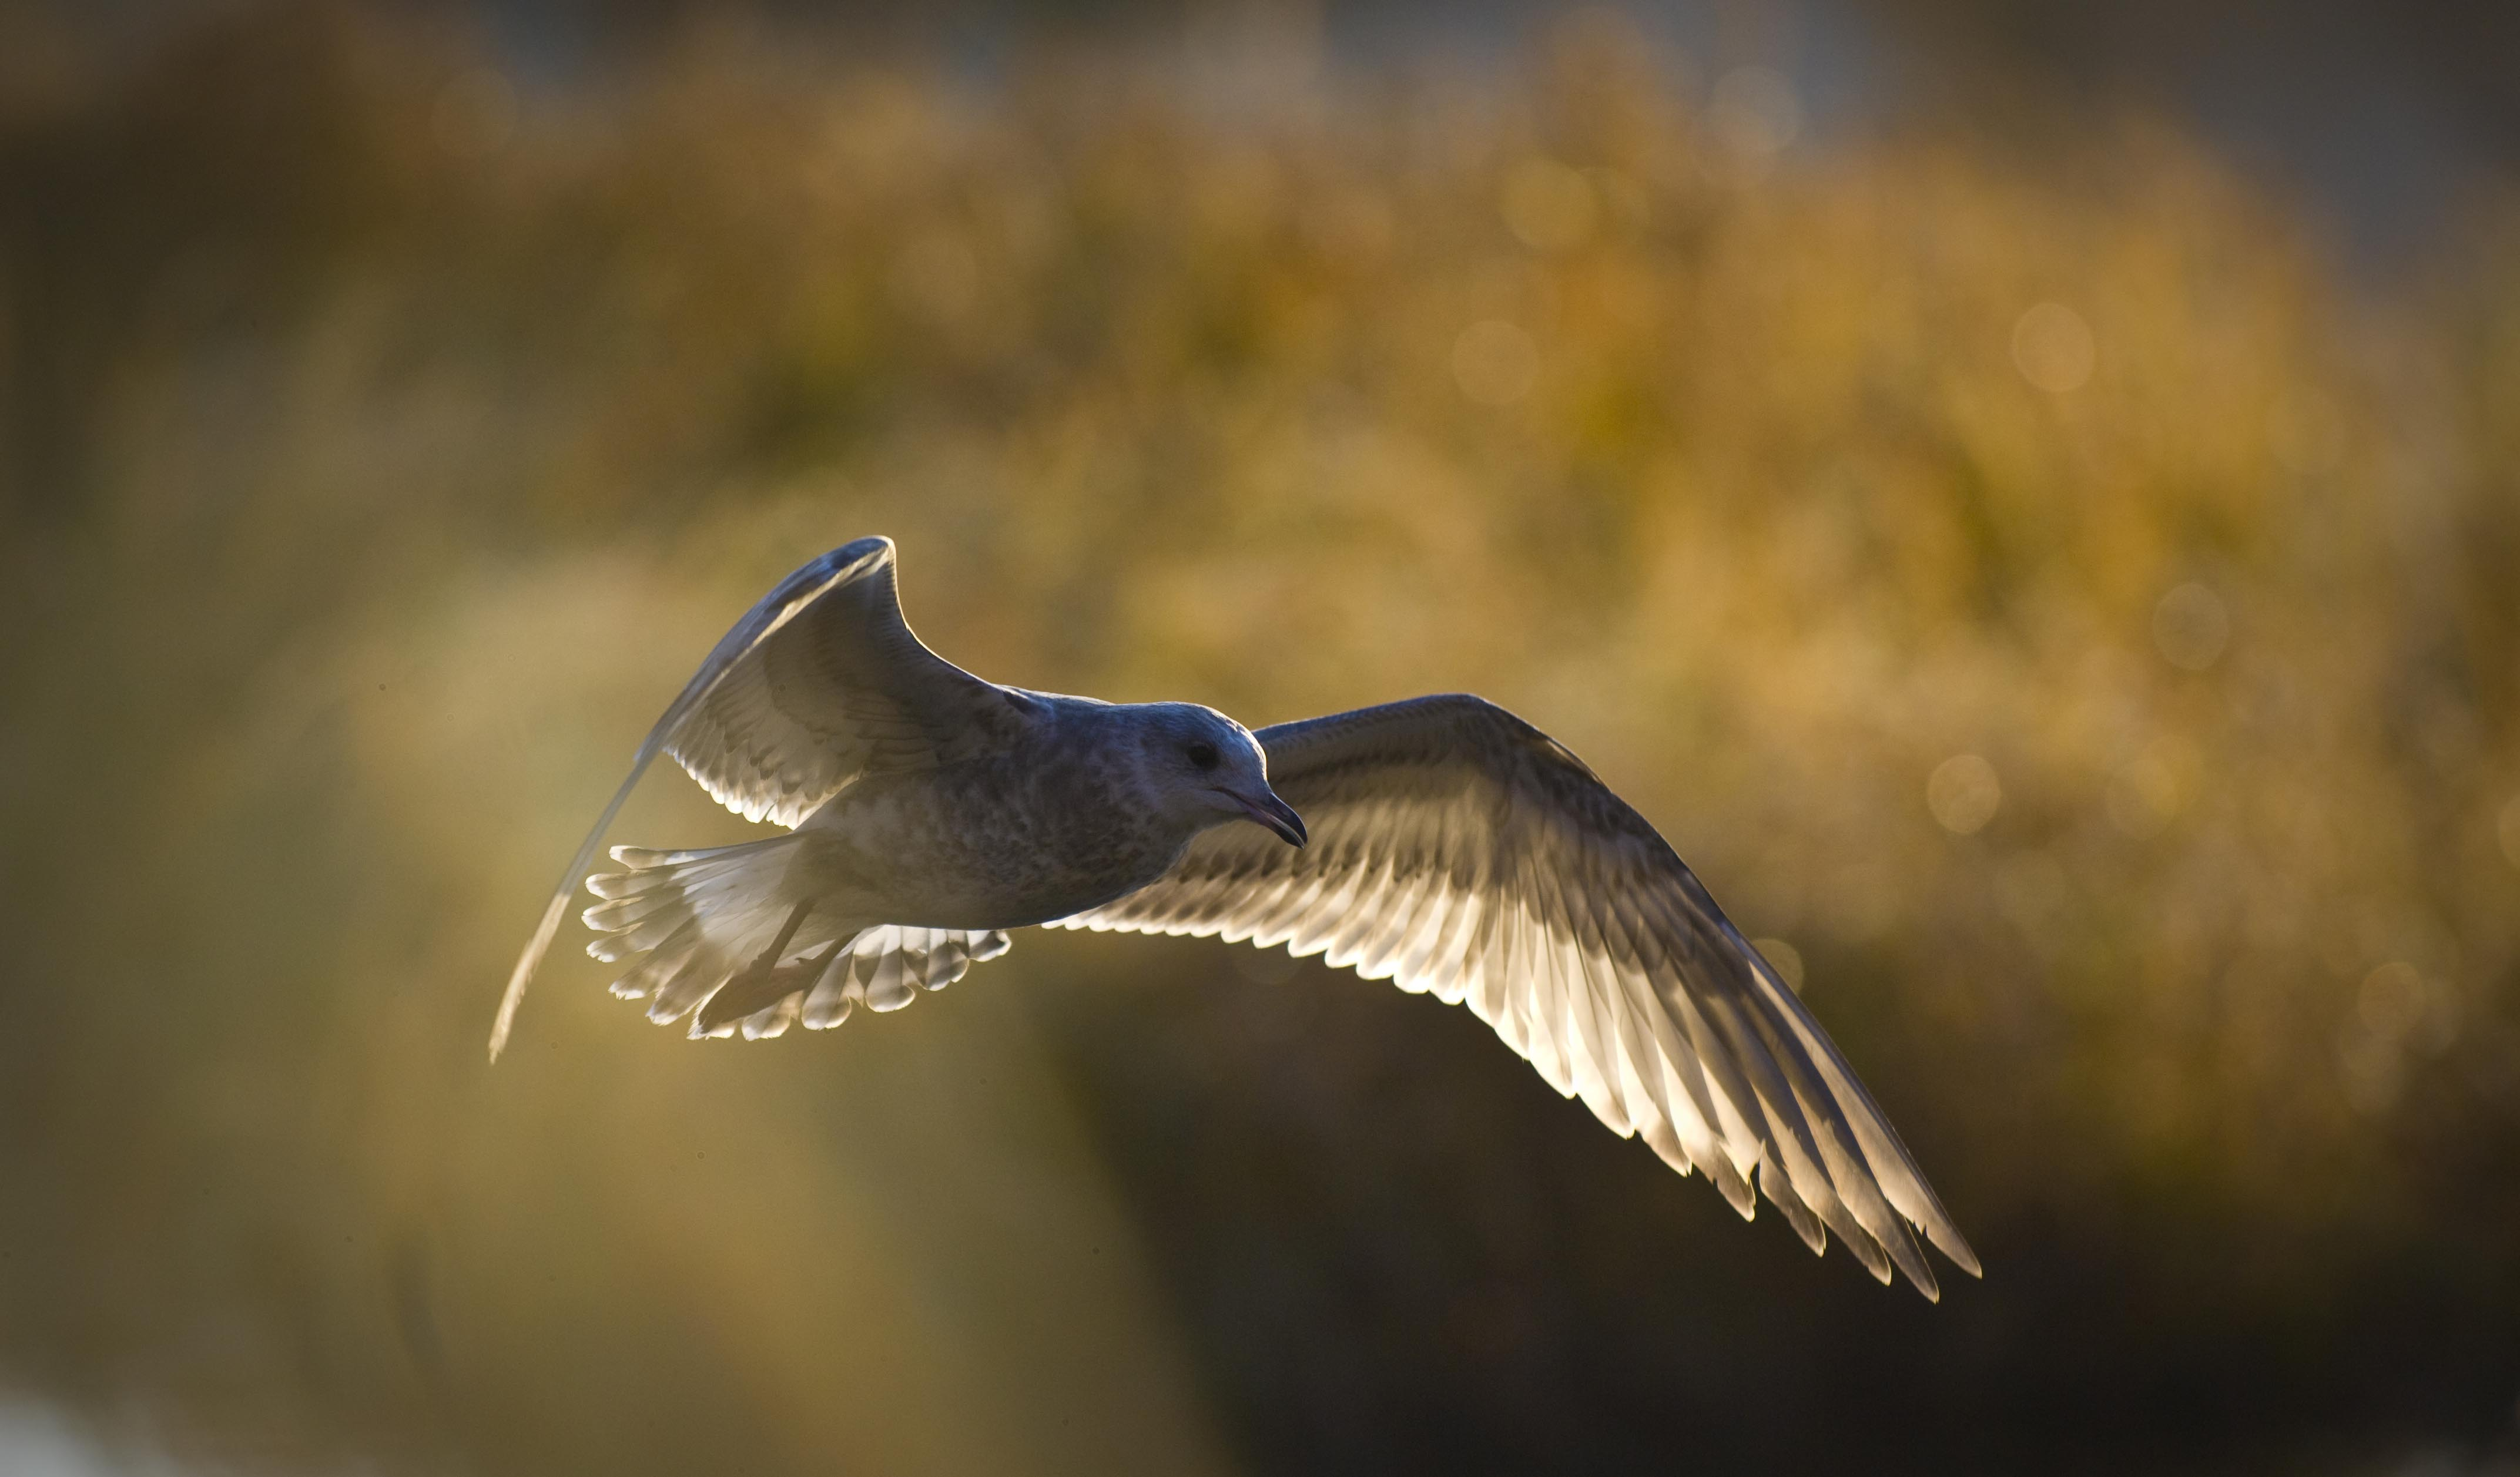 A young seagull flying in the morning sun.